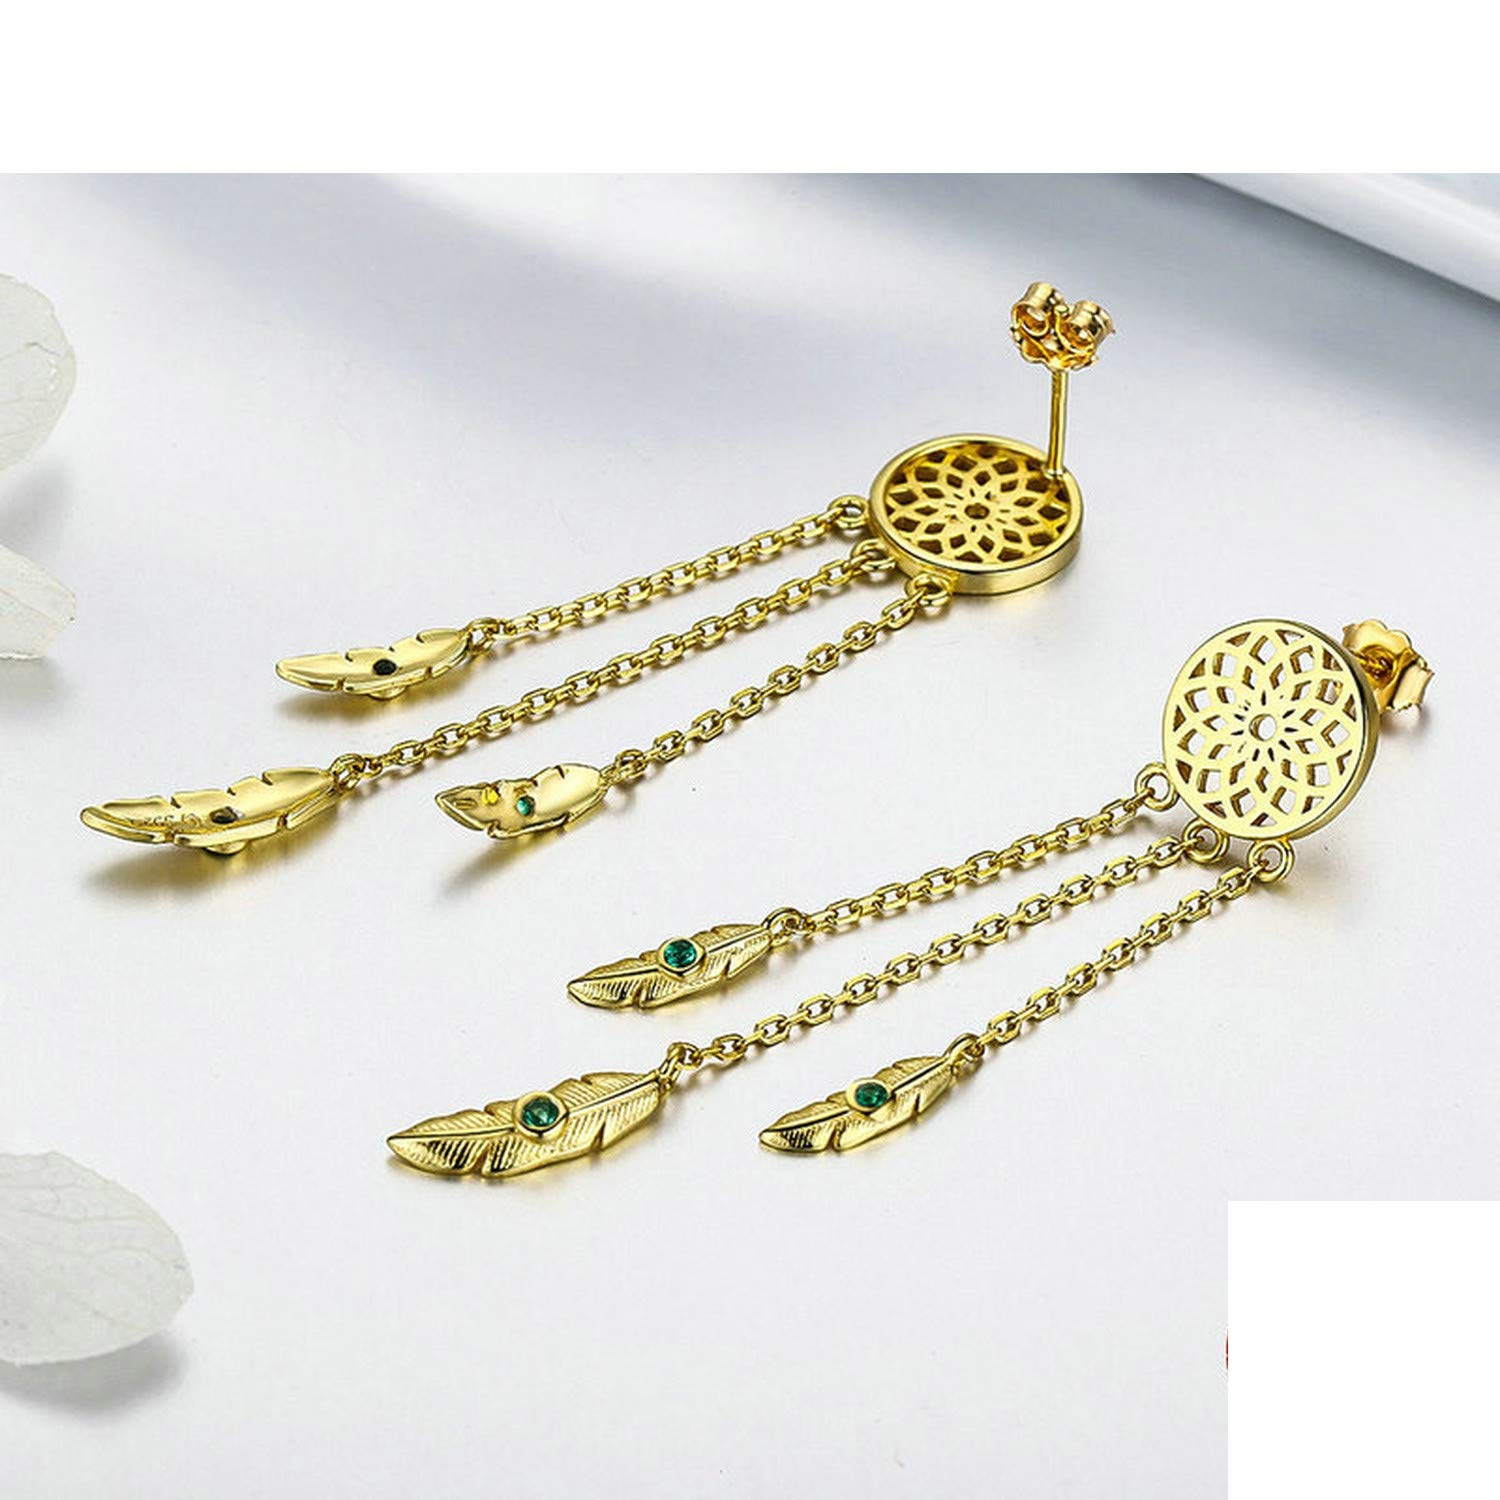 Authentic Sterling Silver Long Earrings Gold Color Vintage Leather Drop Earrings Jewelry